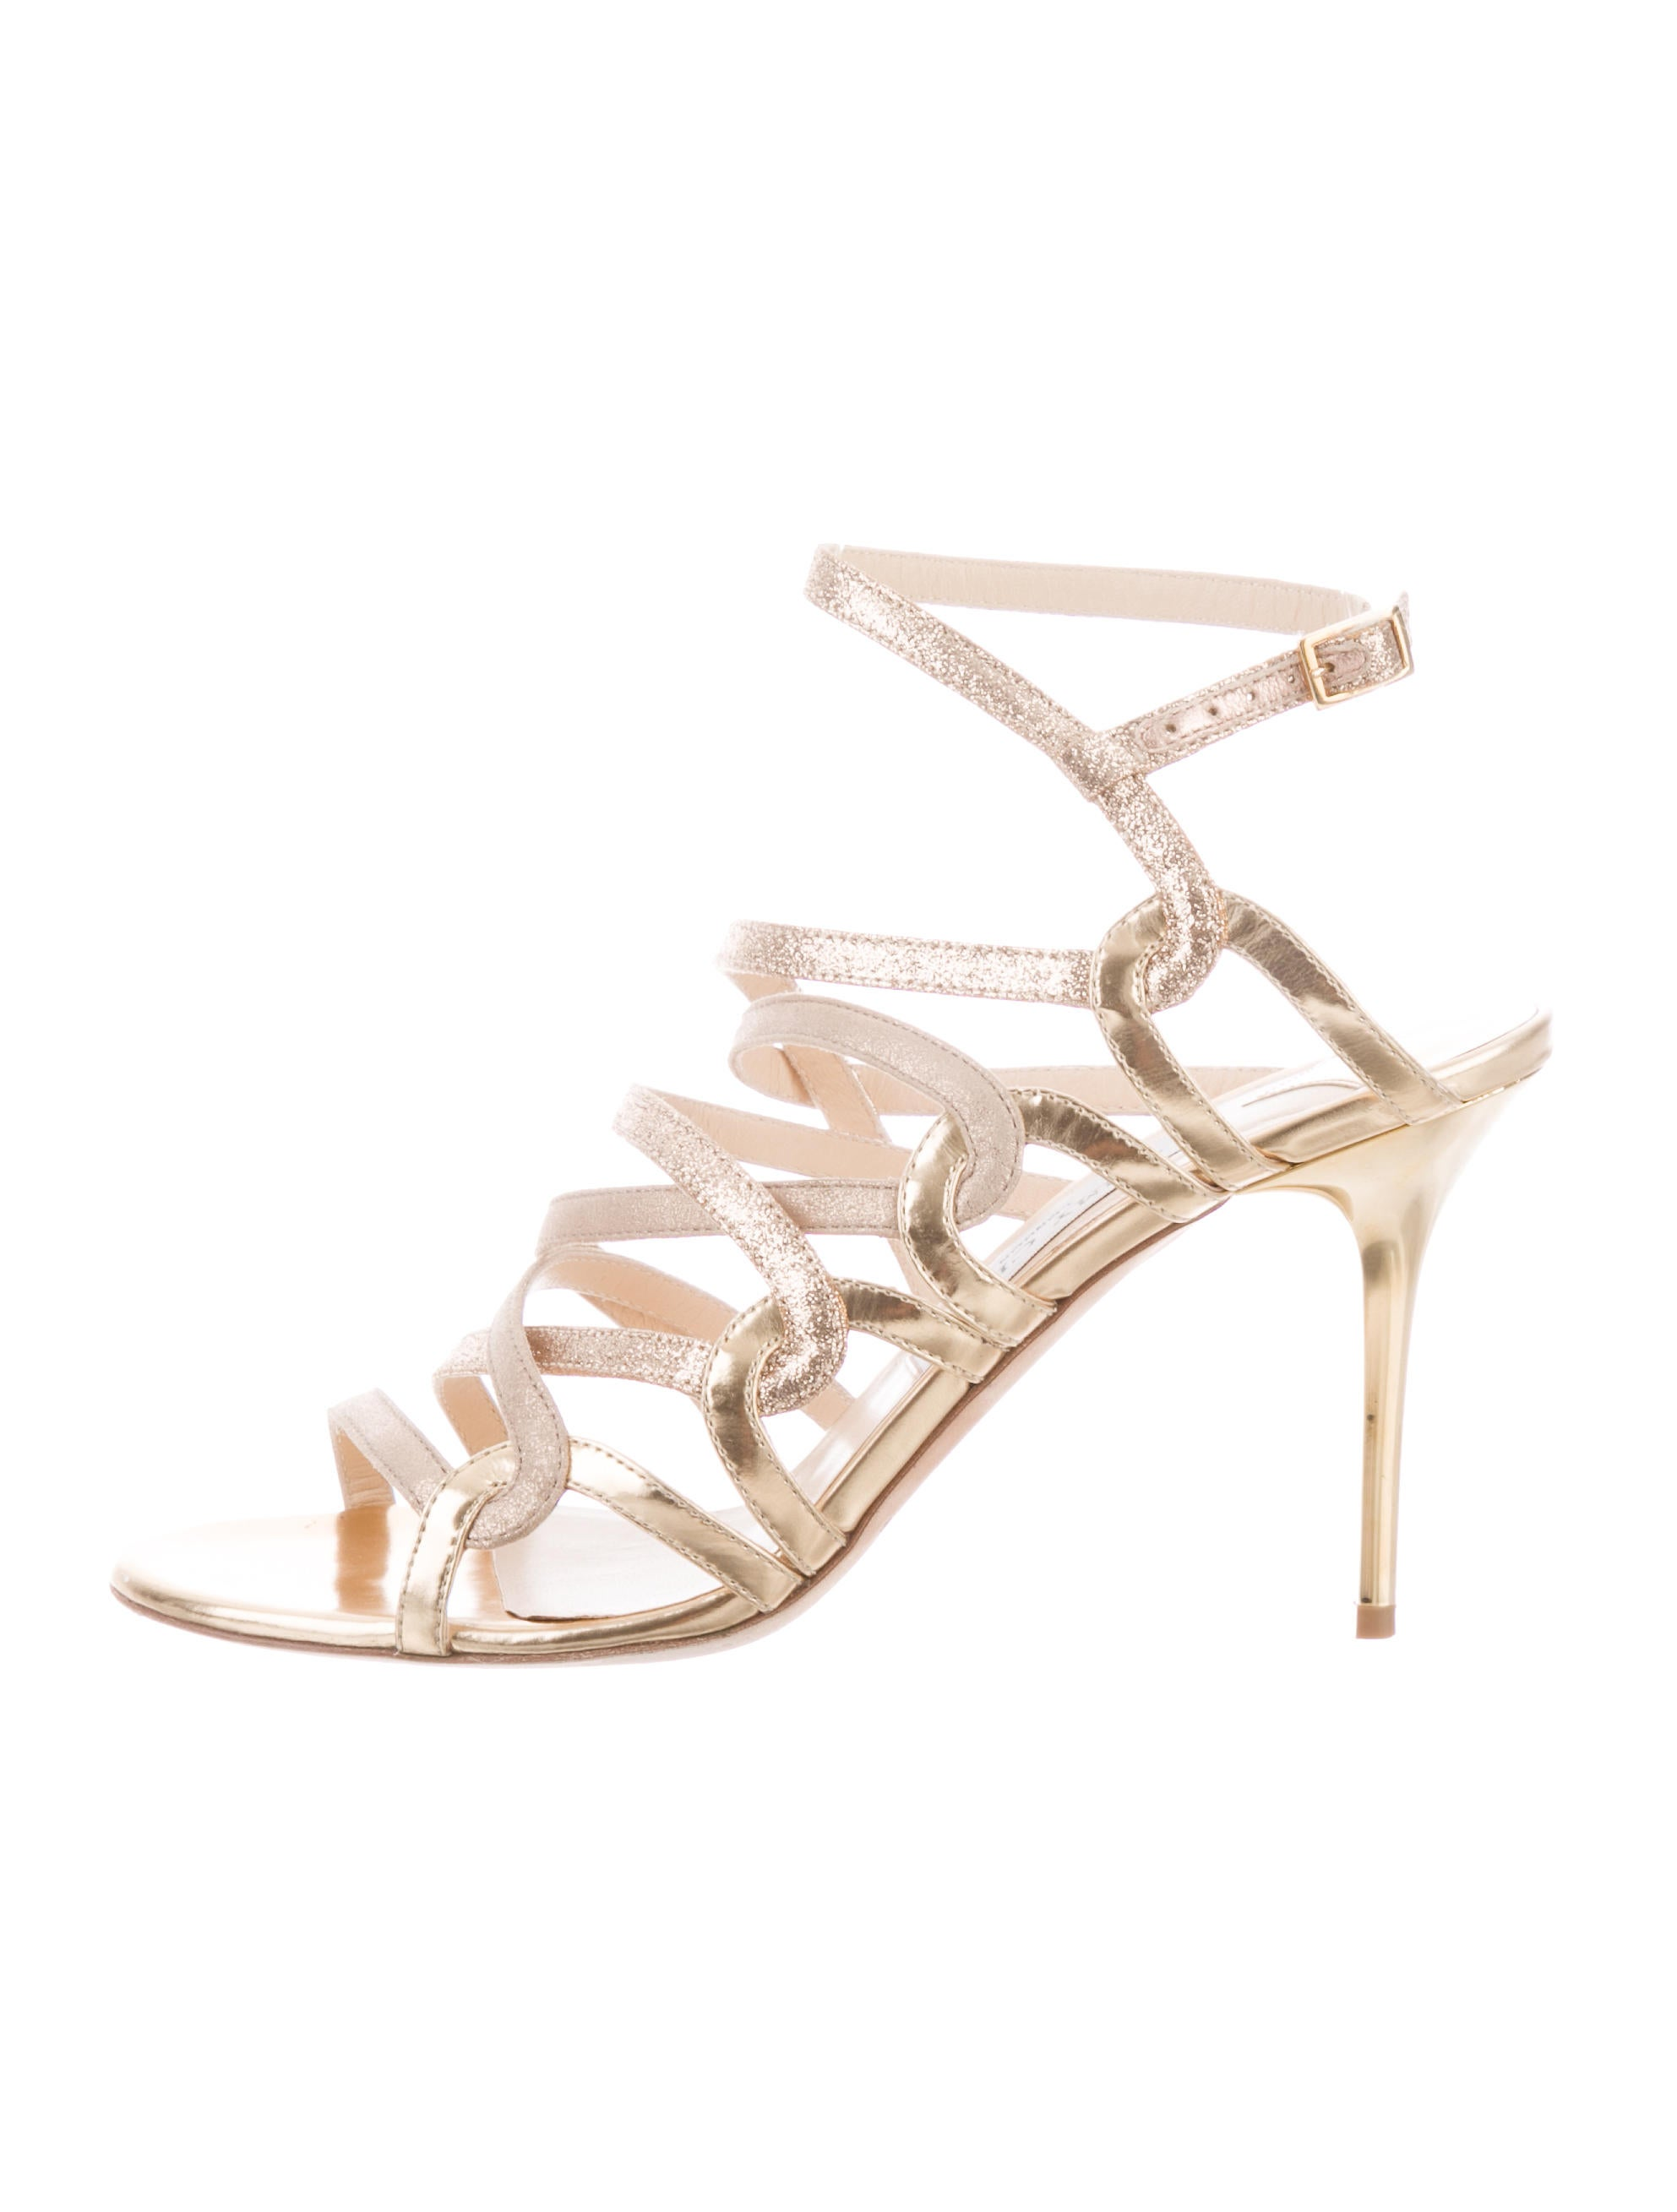 9667ad16f54d Jimmy Choo Multistrap Cage Sandals - Shoes - JIM106047